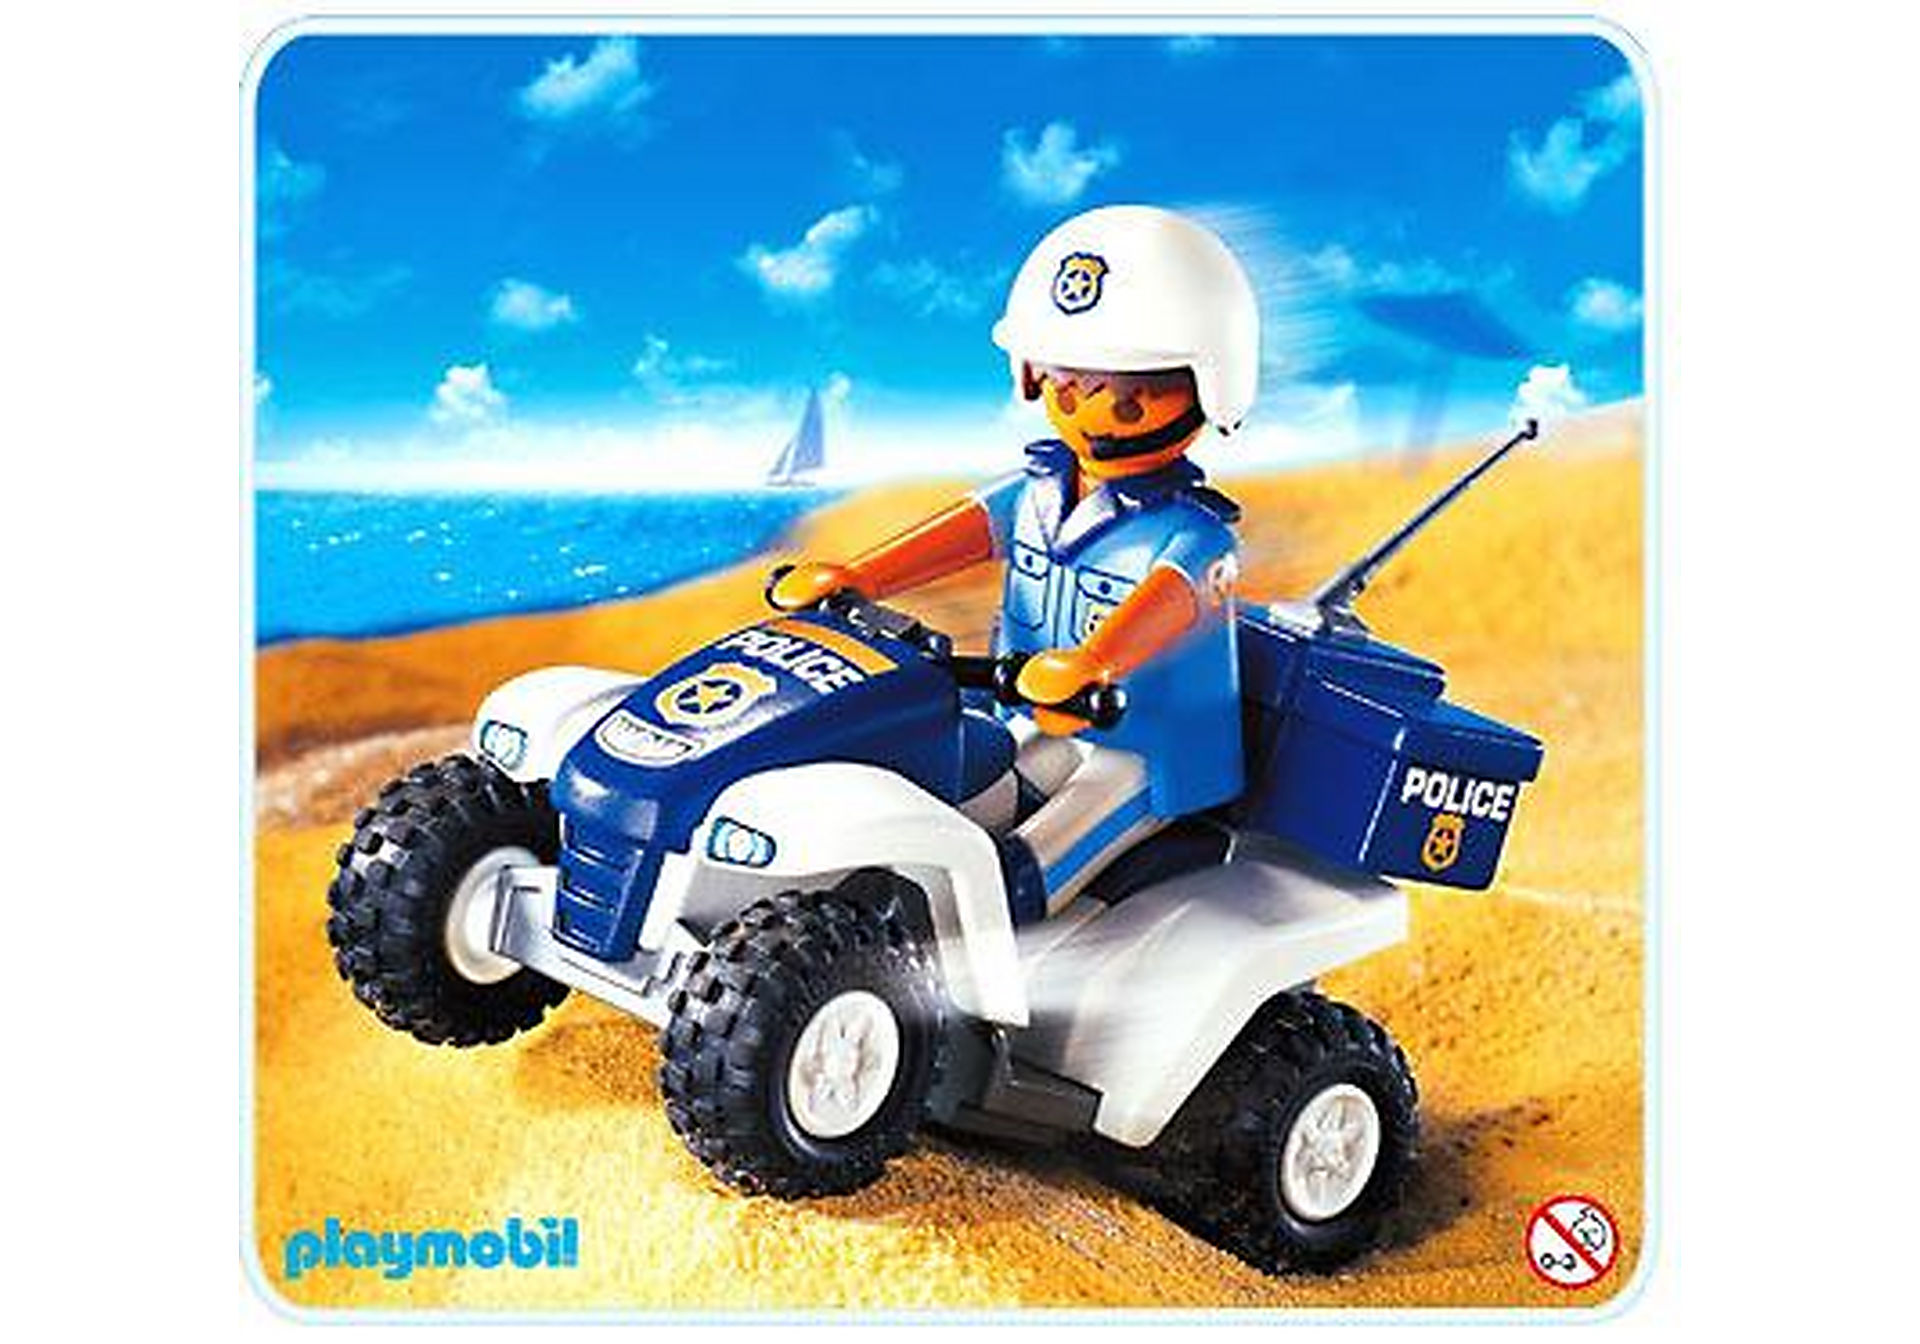 http://media.playmobil.com/i/playmobil/3655-B_product_detail/Policier / quad